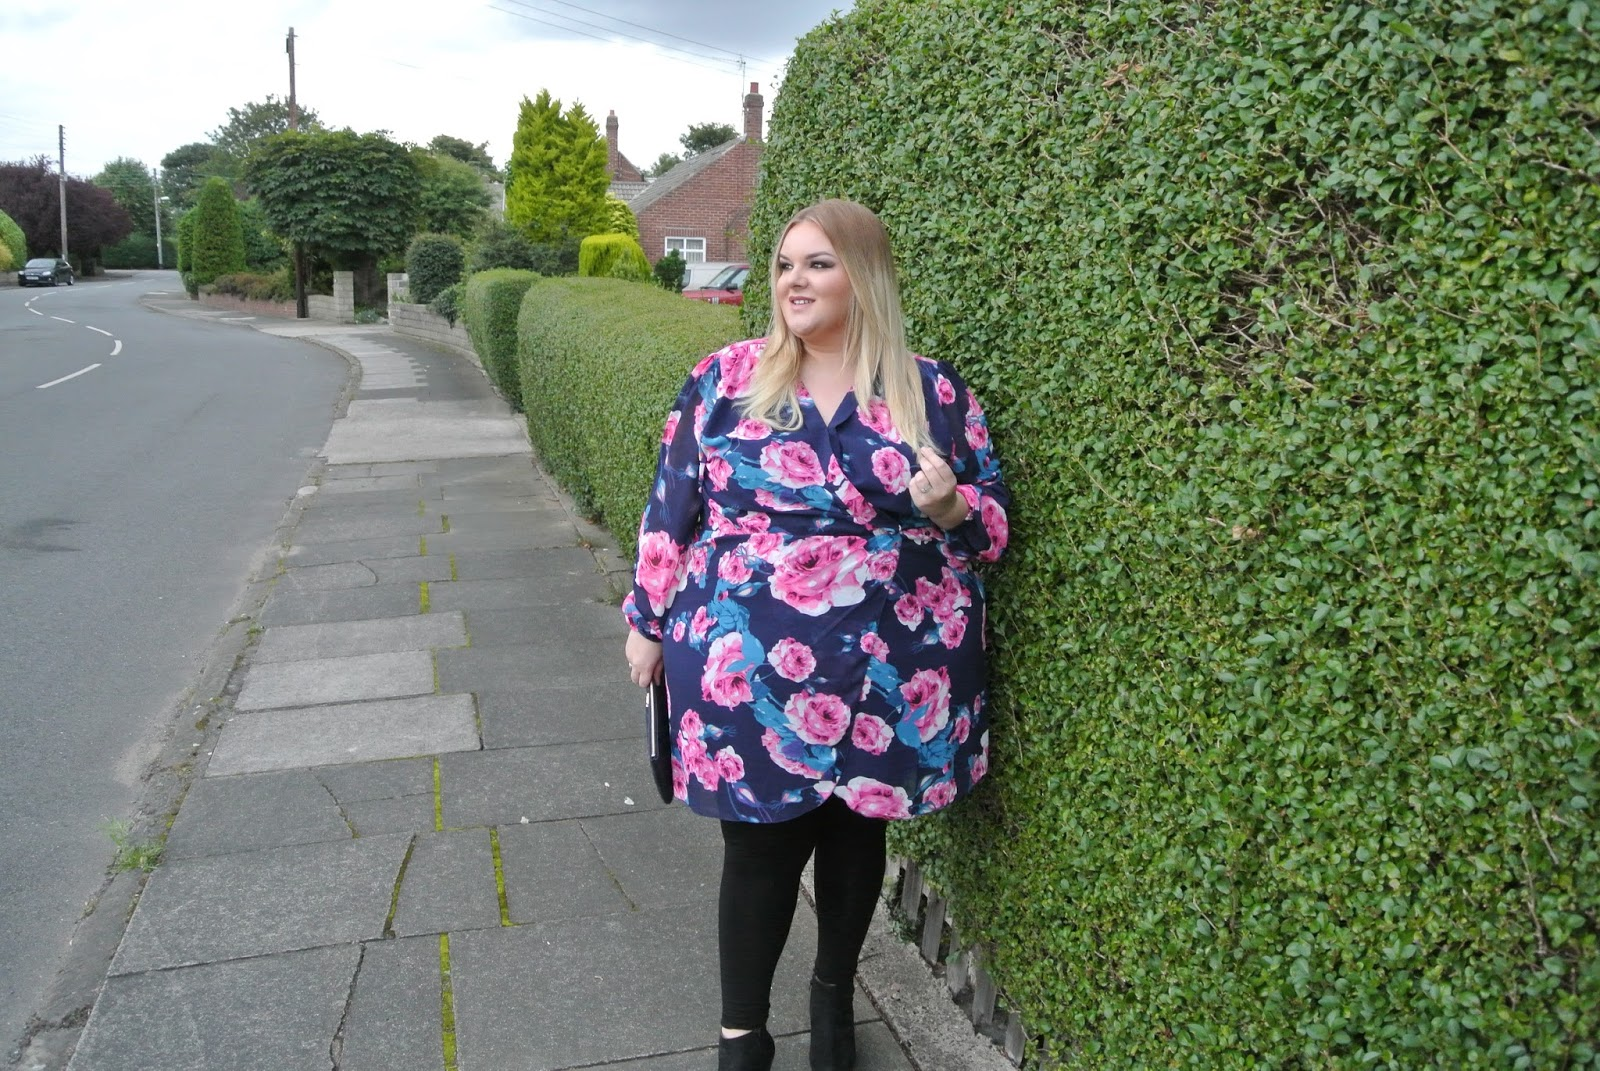 J s everyday fashion on twitter hateful comment re - I Sized Up Three Sizes To Get A More Loose Comfortable Fit So If You Re As Generously Shaped Like I Am Then I Would Recommend Sizing Up